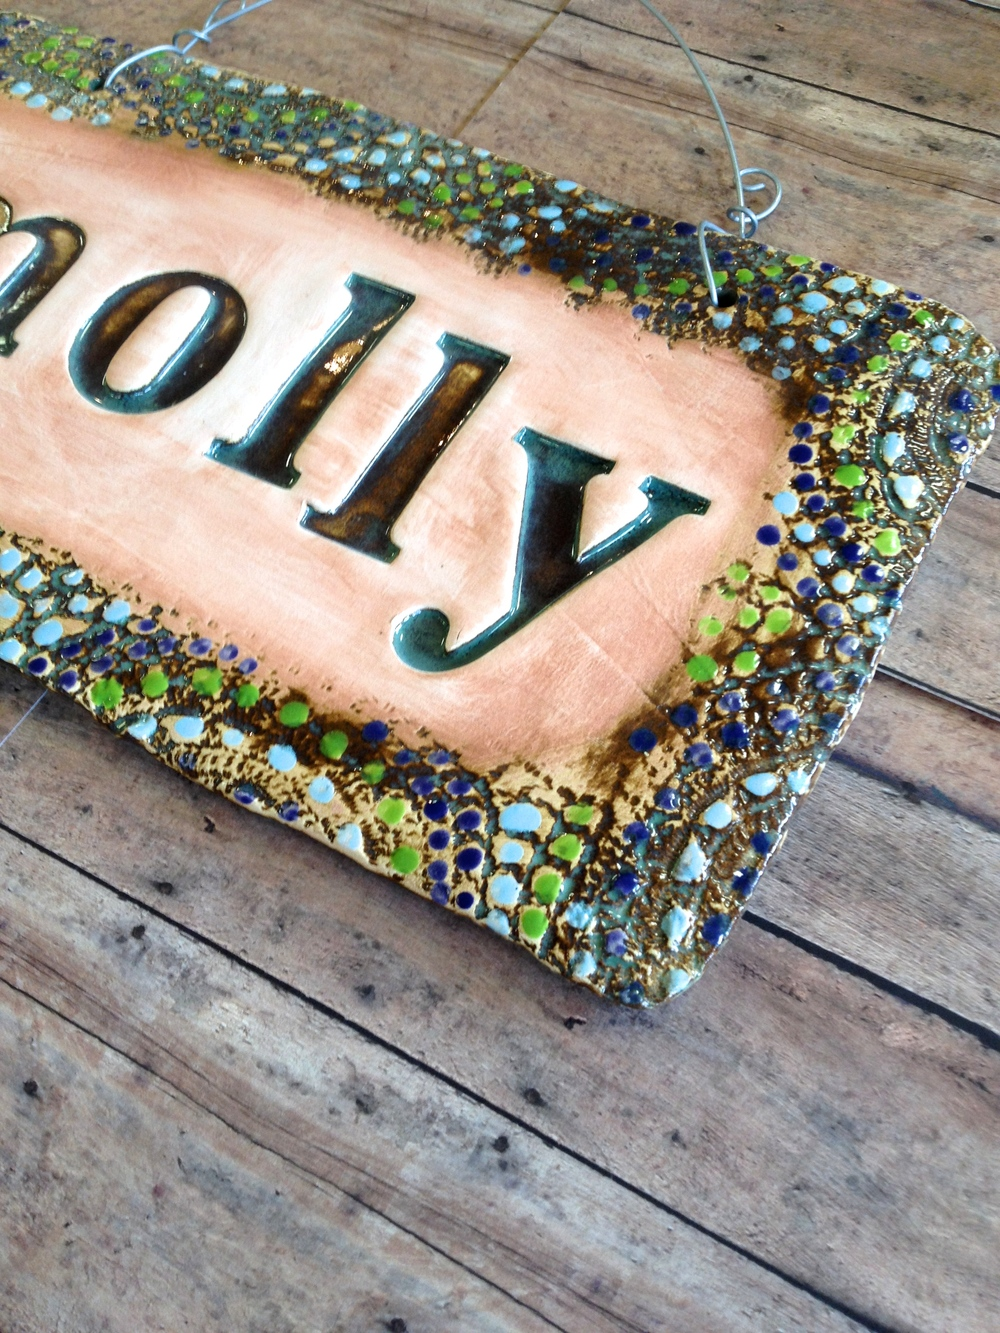 Our Molly sign is shown here in our natural earth tone color scheme and highlighted with lime green, cobalt blue and light blue.